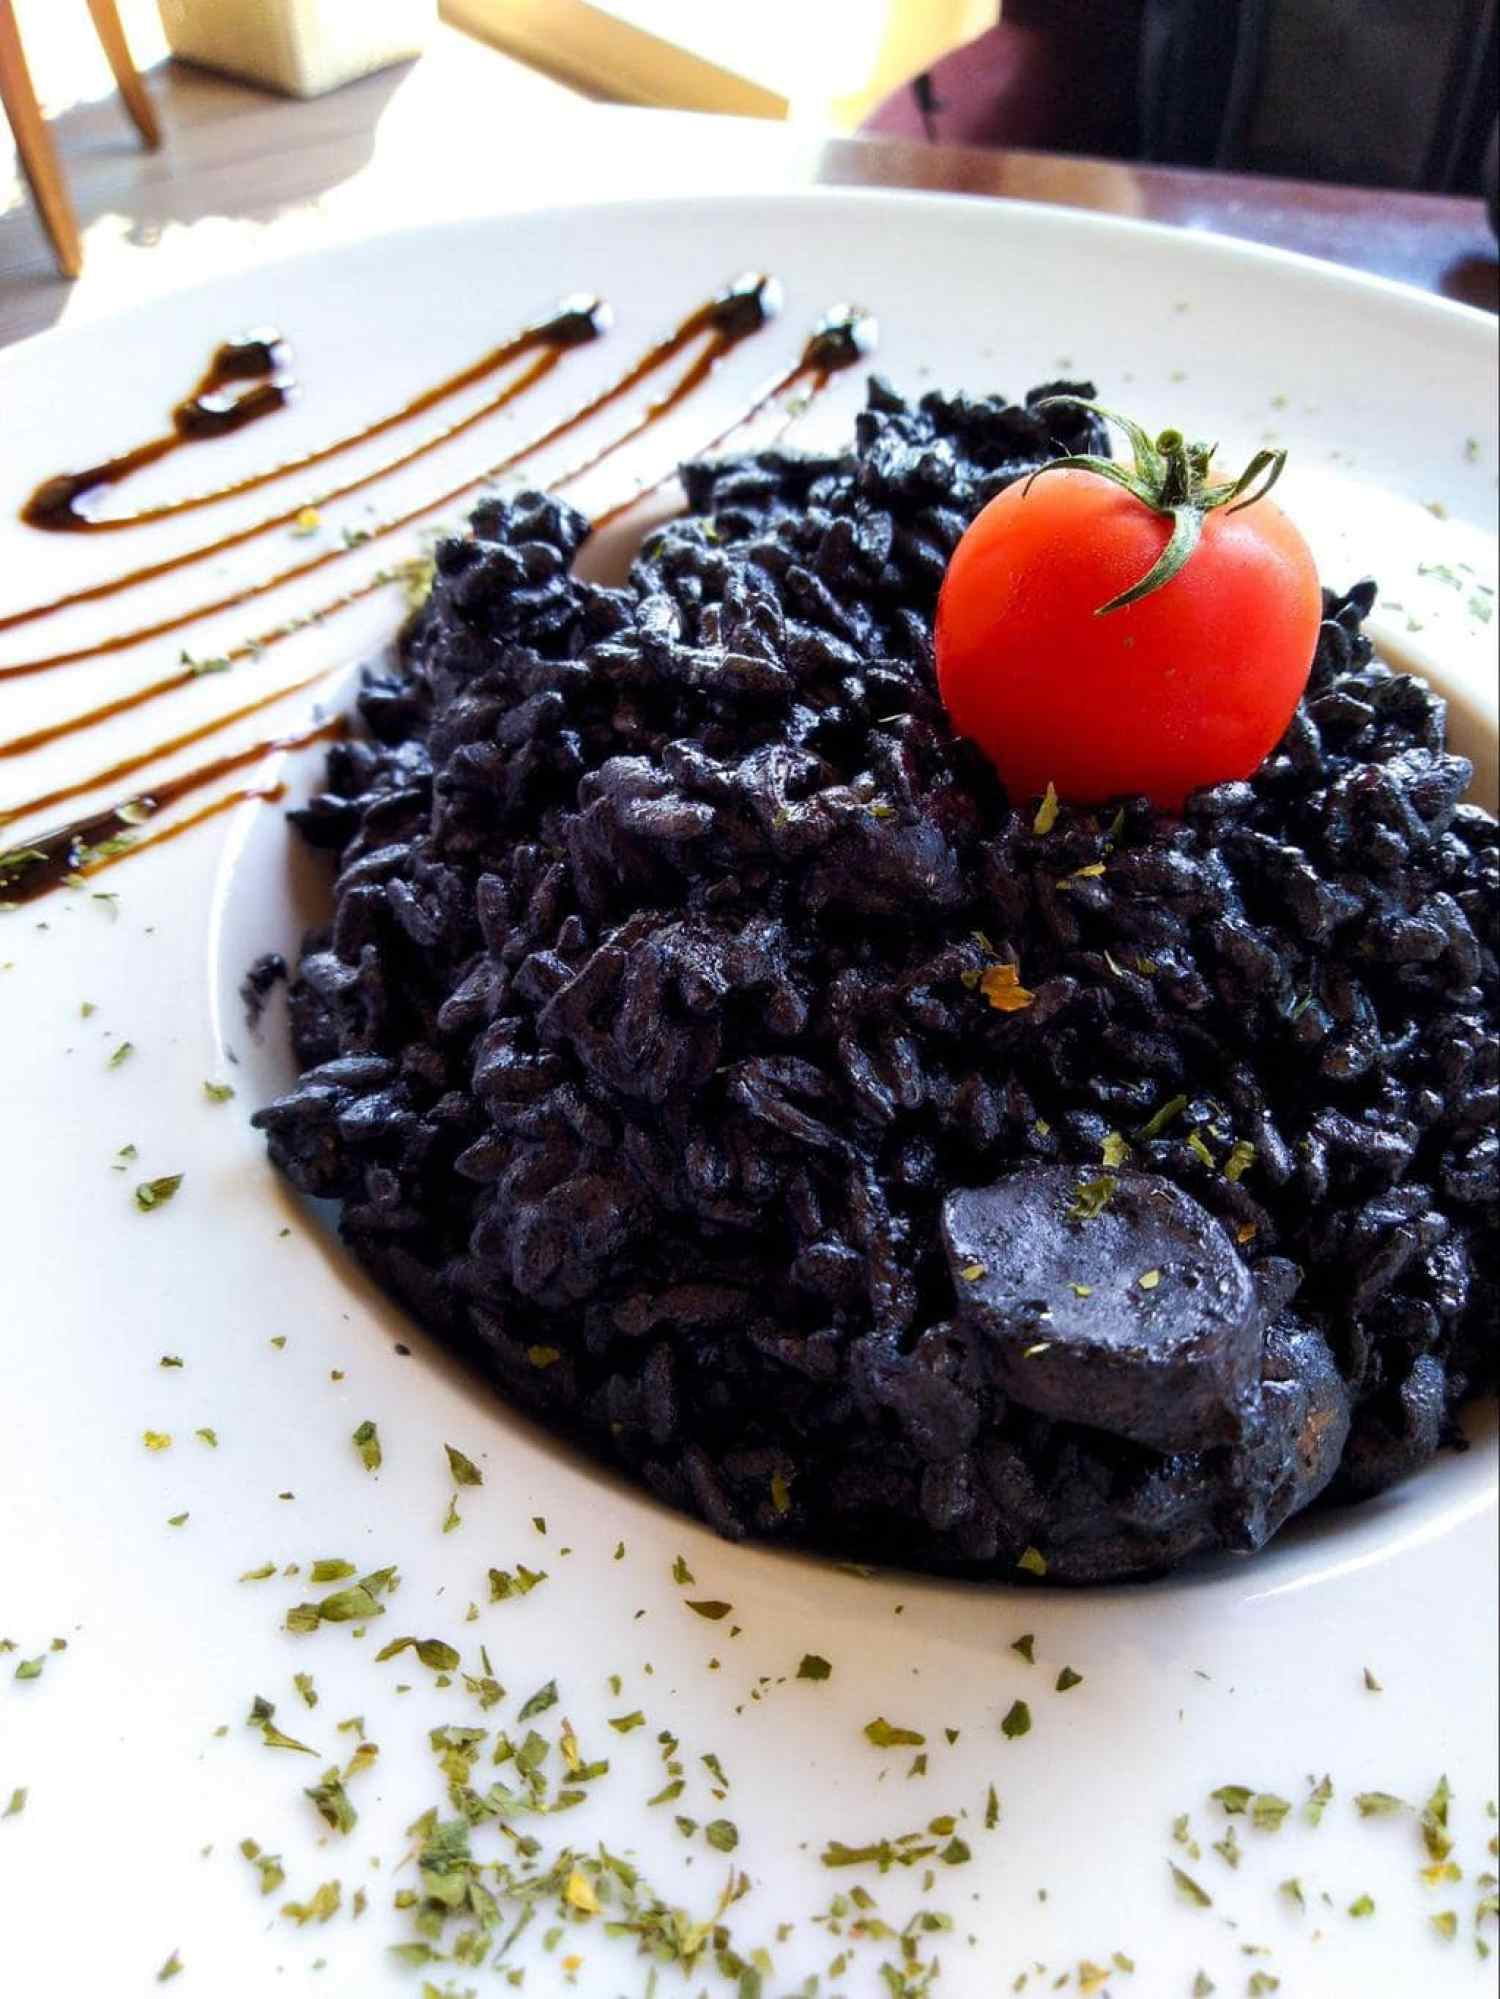 Another version of Montenegrin black risotto